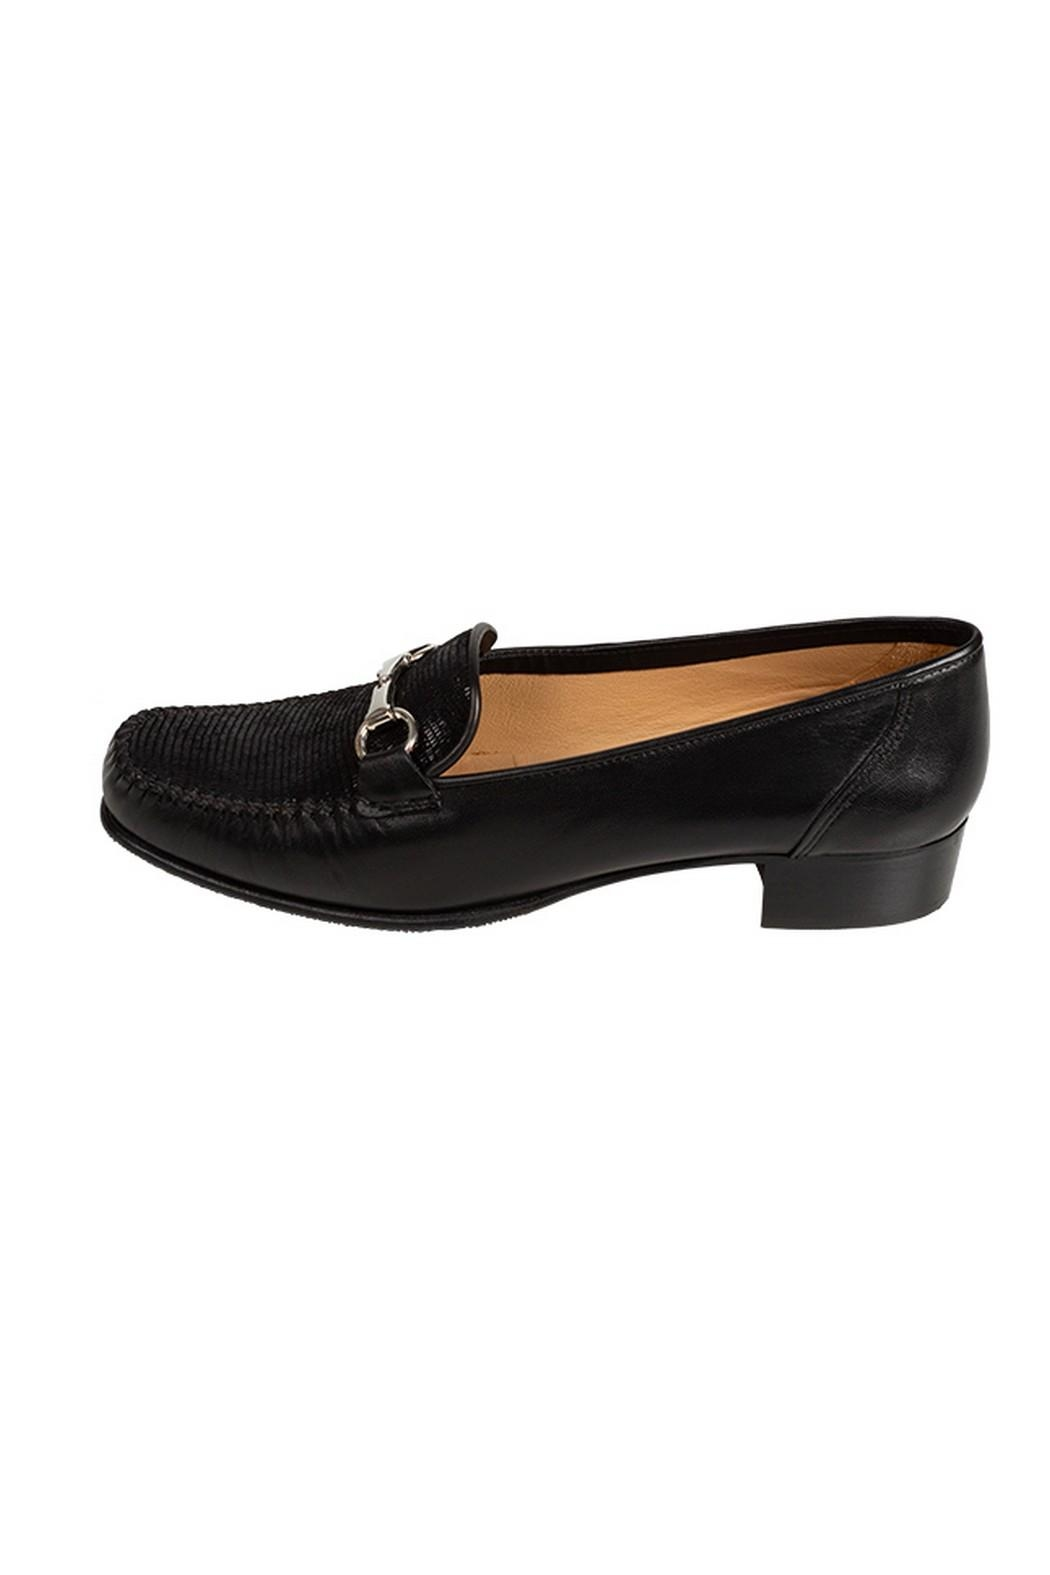 Pascucci Black Leather Loafer - Main Image